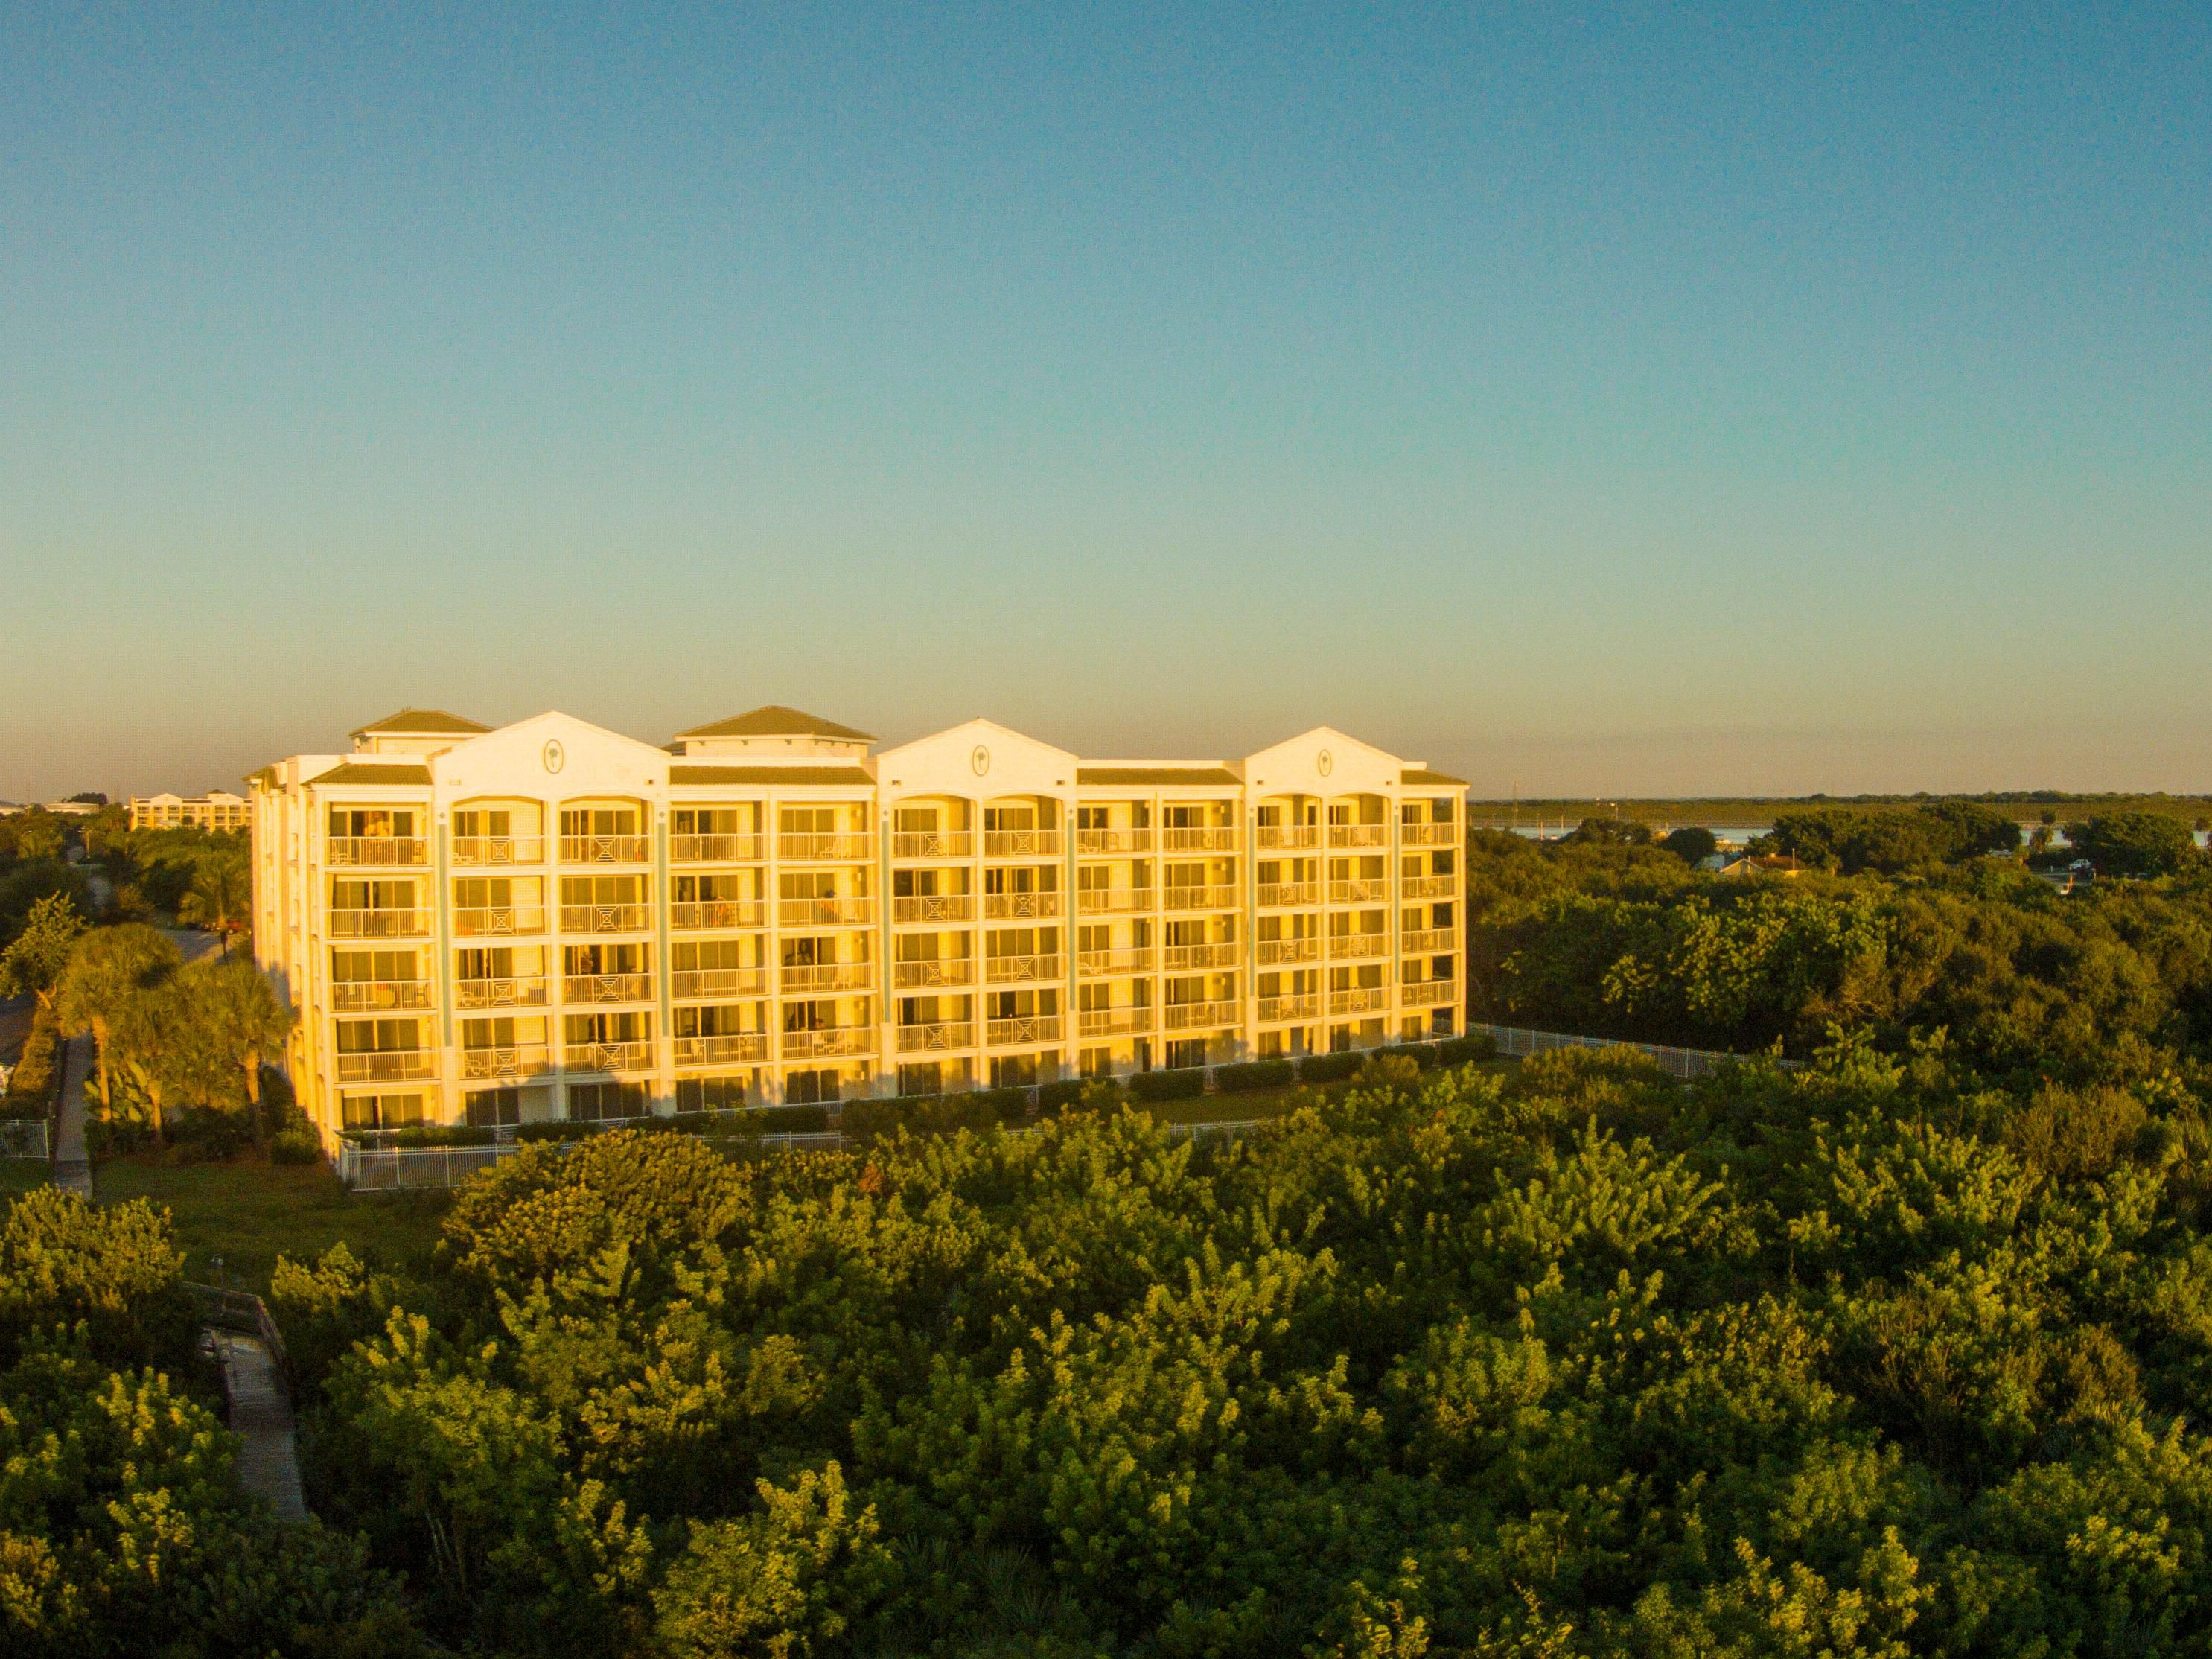 View of exterior building at Cape Canaveral Beach Resort